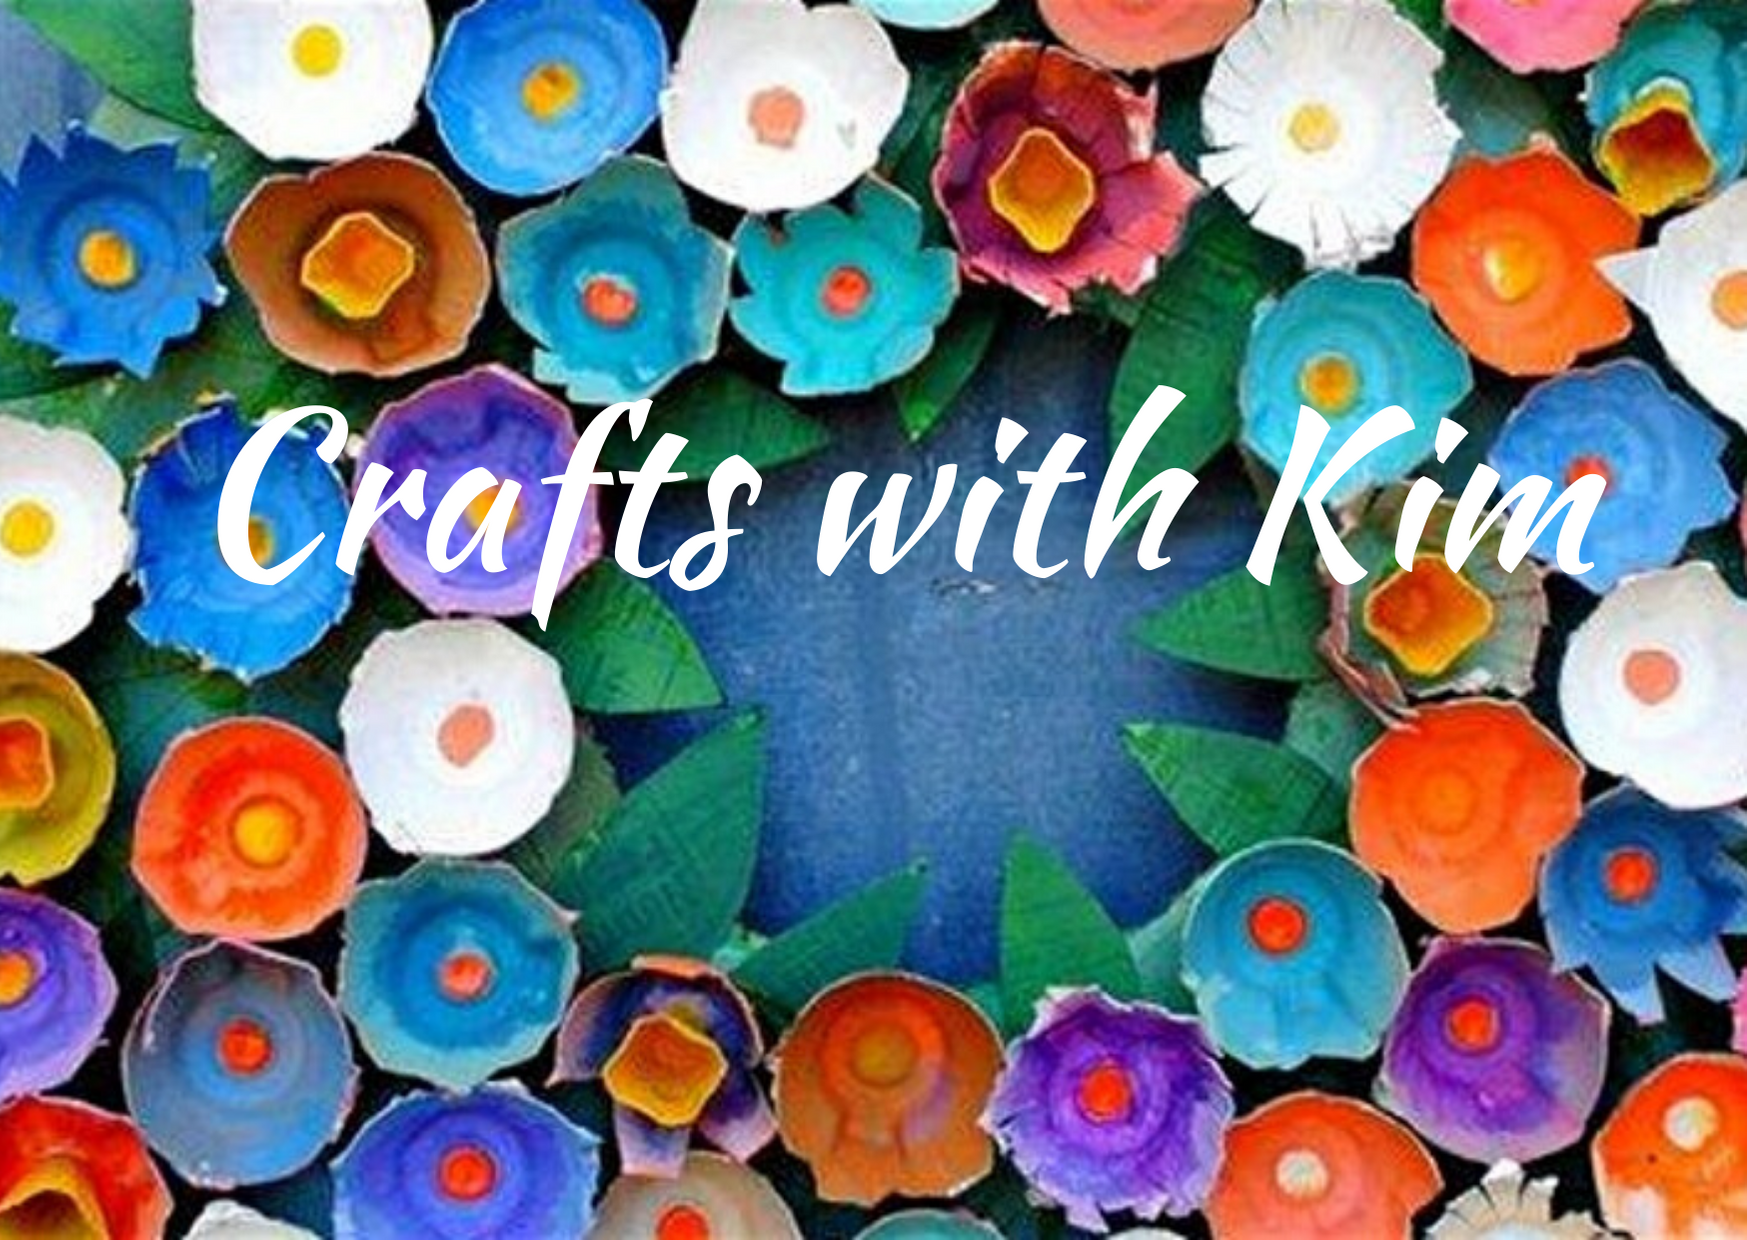 Crafts with Kim sumamry image